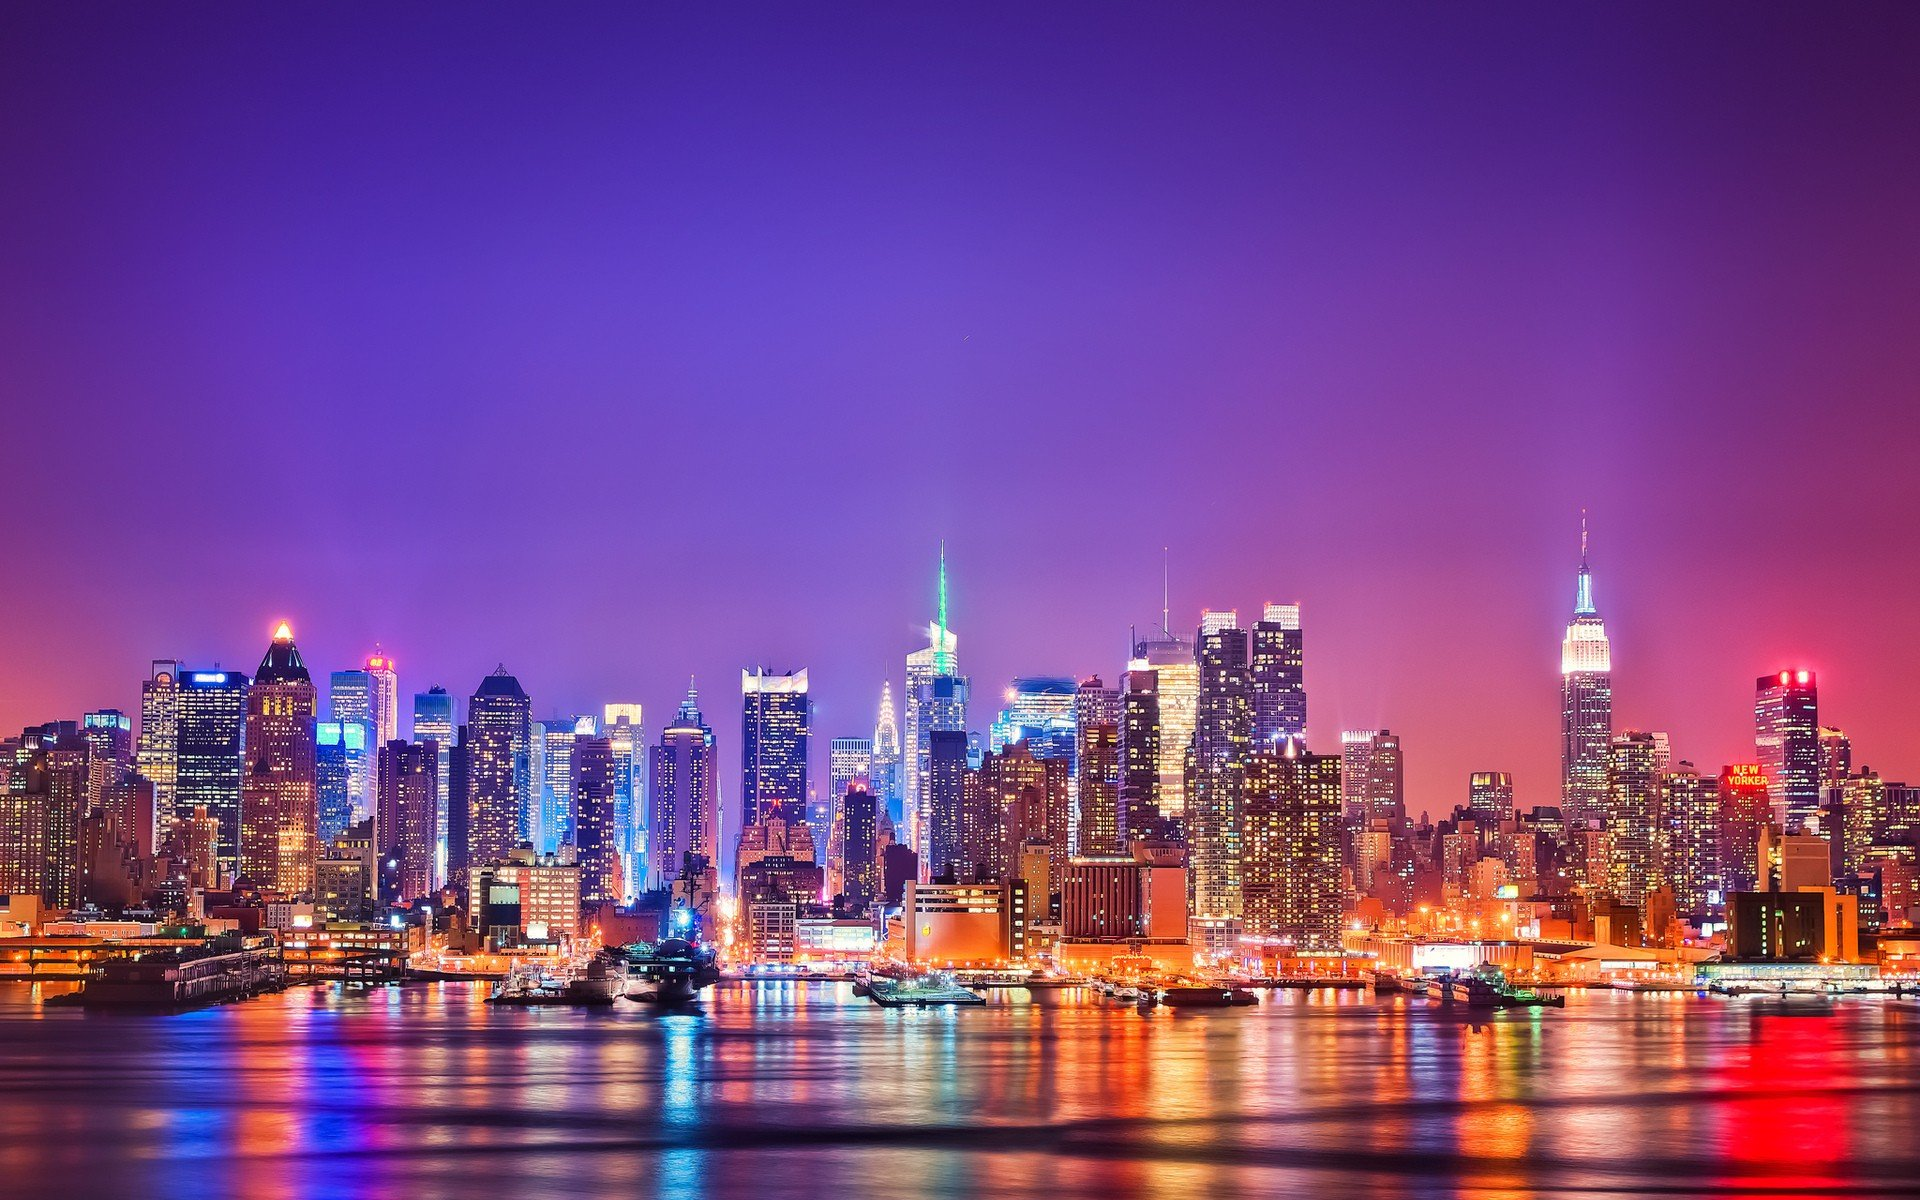 Daily Wallpaper New York Skyline at Night I Like To Waste My Time 1920x1200